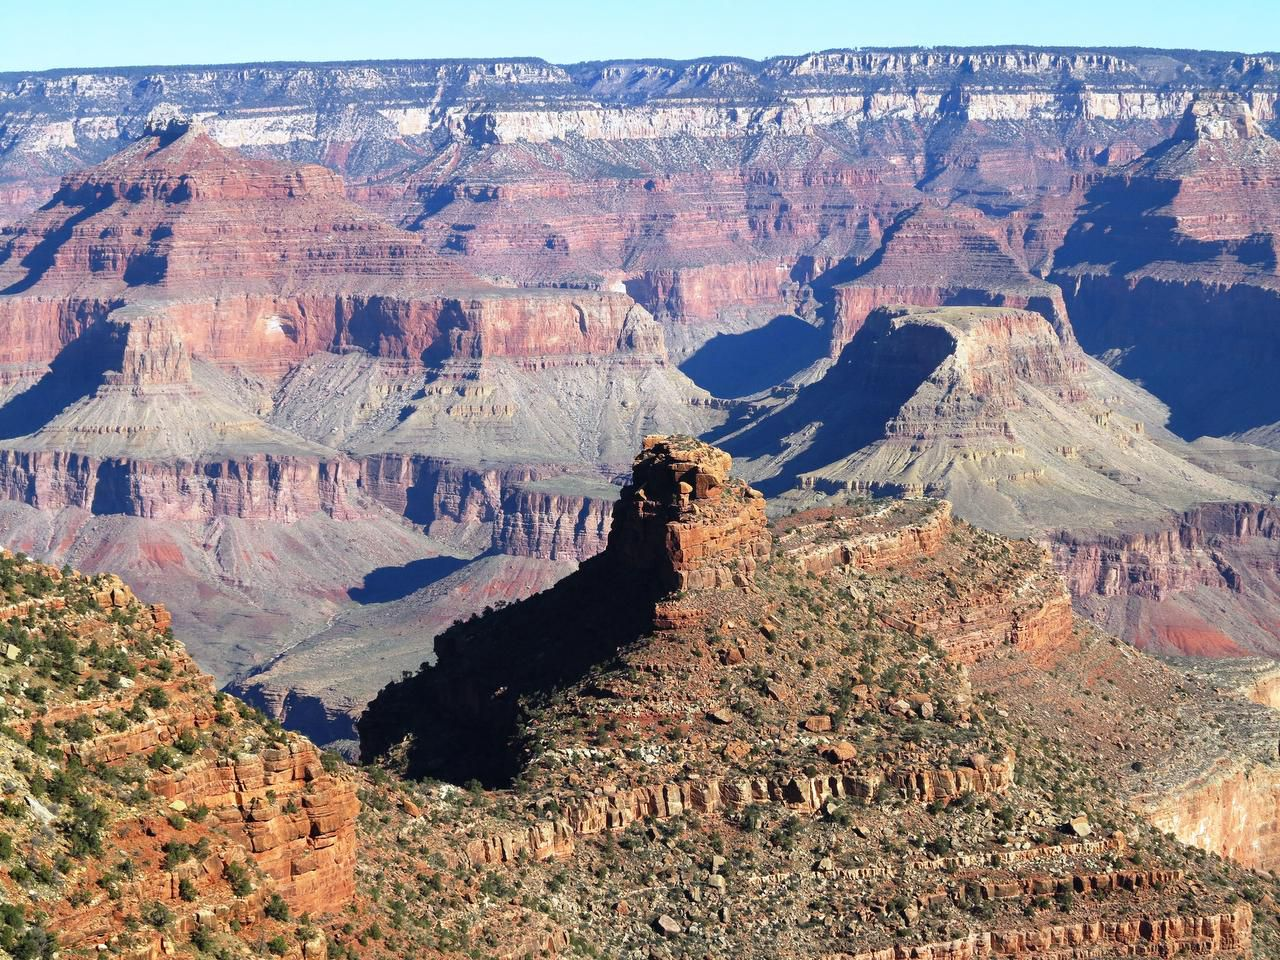 From the South Rim, visitors can take in striking views of the Grand Canyon and reflect on the billions of years of geologic processes that created such a massive landscape.